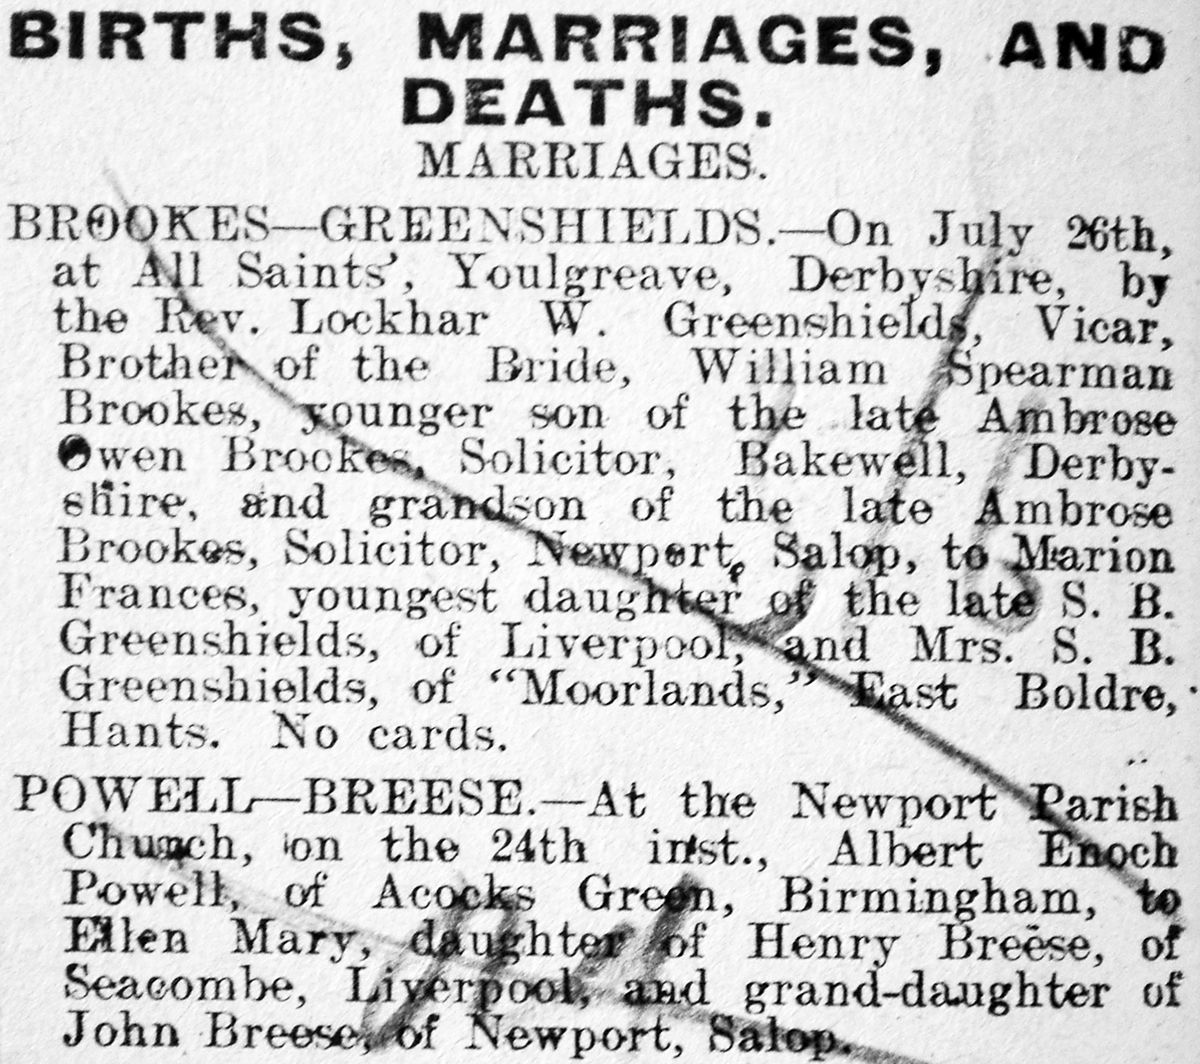 Enoch Powell's parents were married in Newport in 1909, as this notice in the local paper shows.